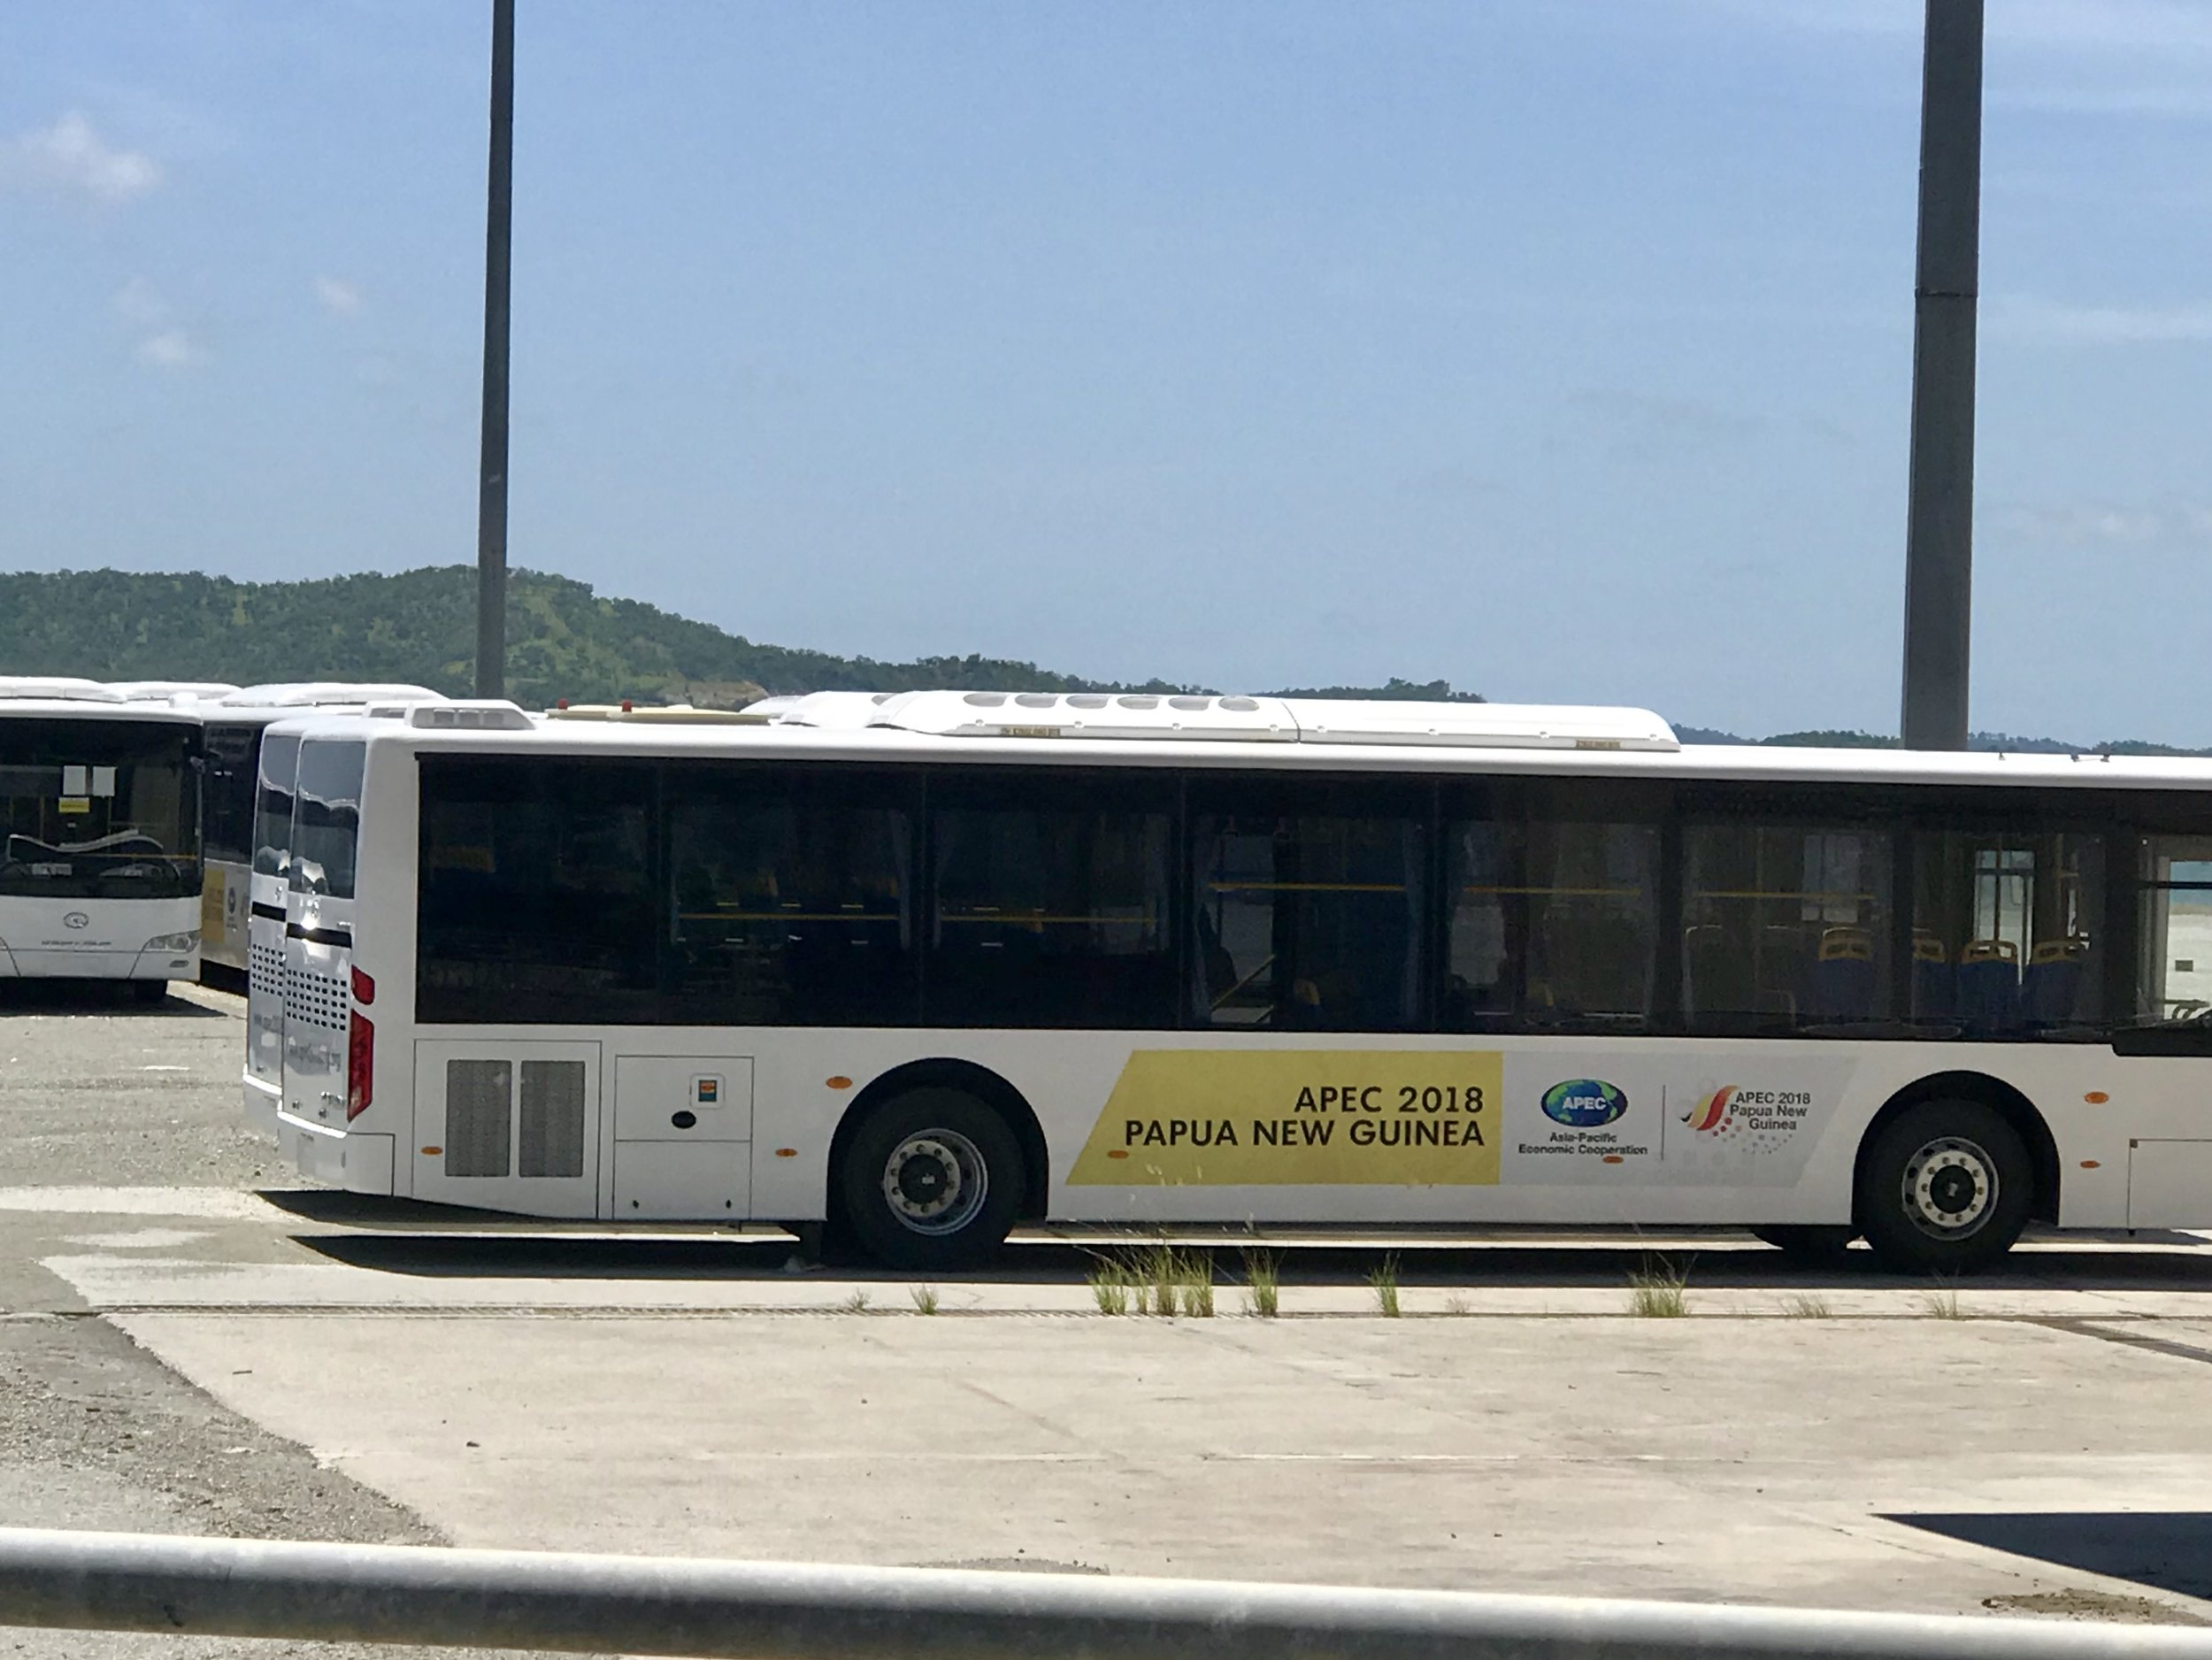 One of the many vehicles from the 2018 APEC Summit waiting to be sold.